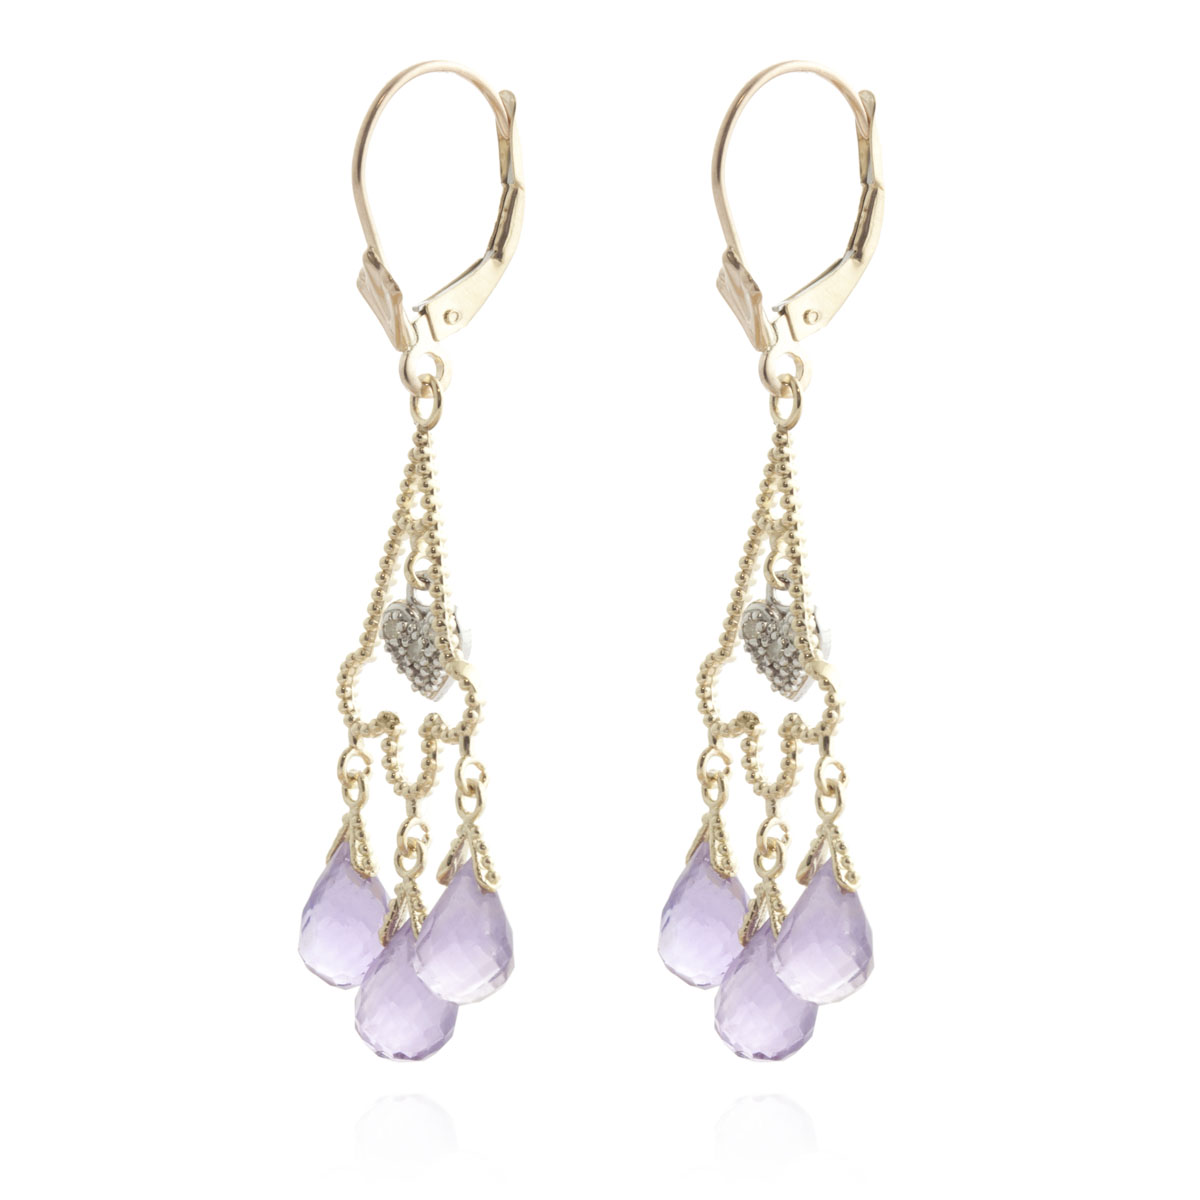 Amethyst Trilogy Drop Earrings 4.83 ctw in 9ct Gold